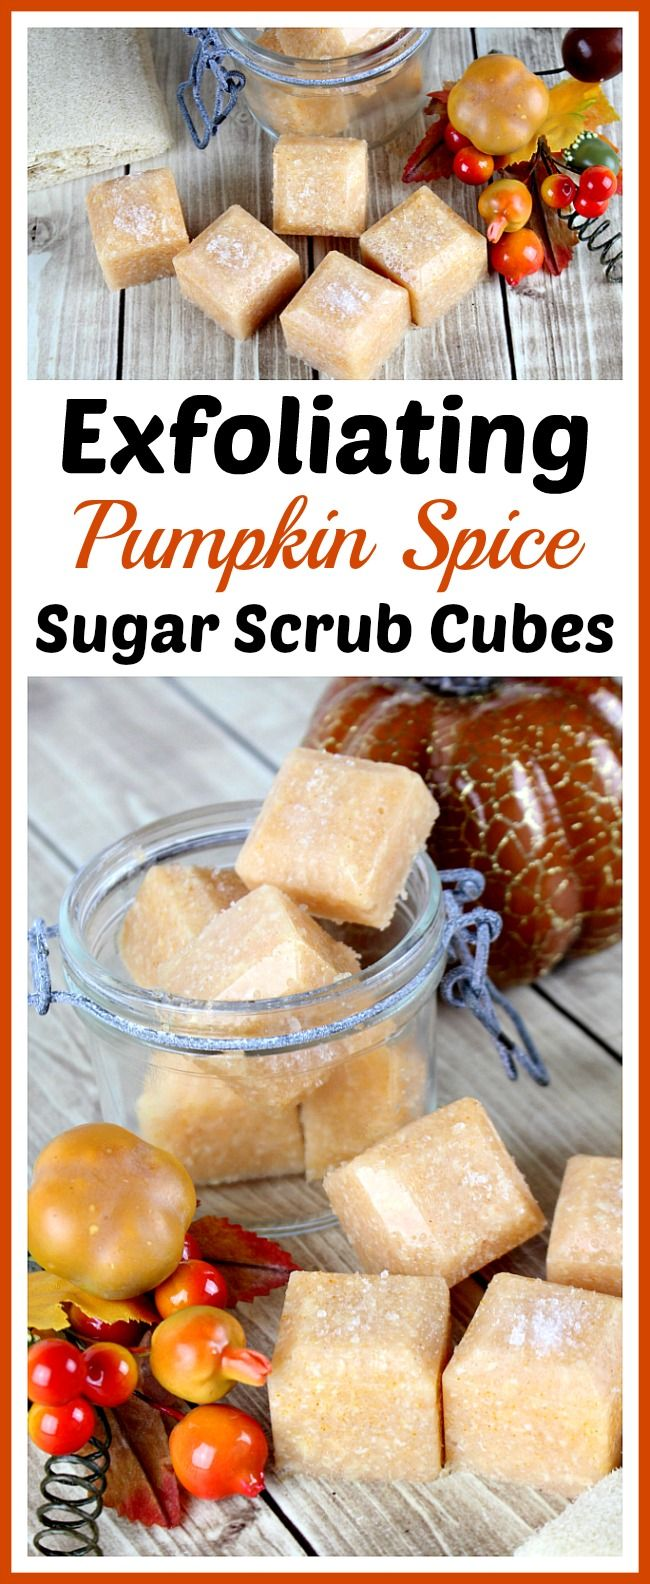 Exfoliating Pumpkin Spice Sugar Scrub Cubes- These exfoliating pumpkin spice sugar scrub cubes are such a wonderful way to pamper your skin this fall! They also make a great DIY gift! | autumn, easy, quick, homemade gift, #diybeauty #sugarScrub #beauty #homemade